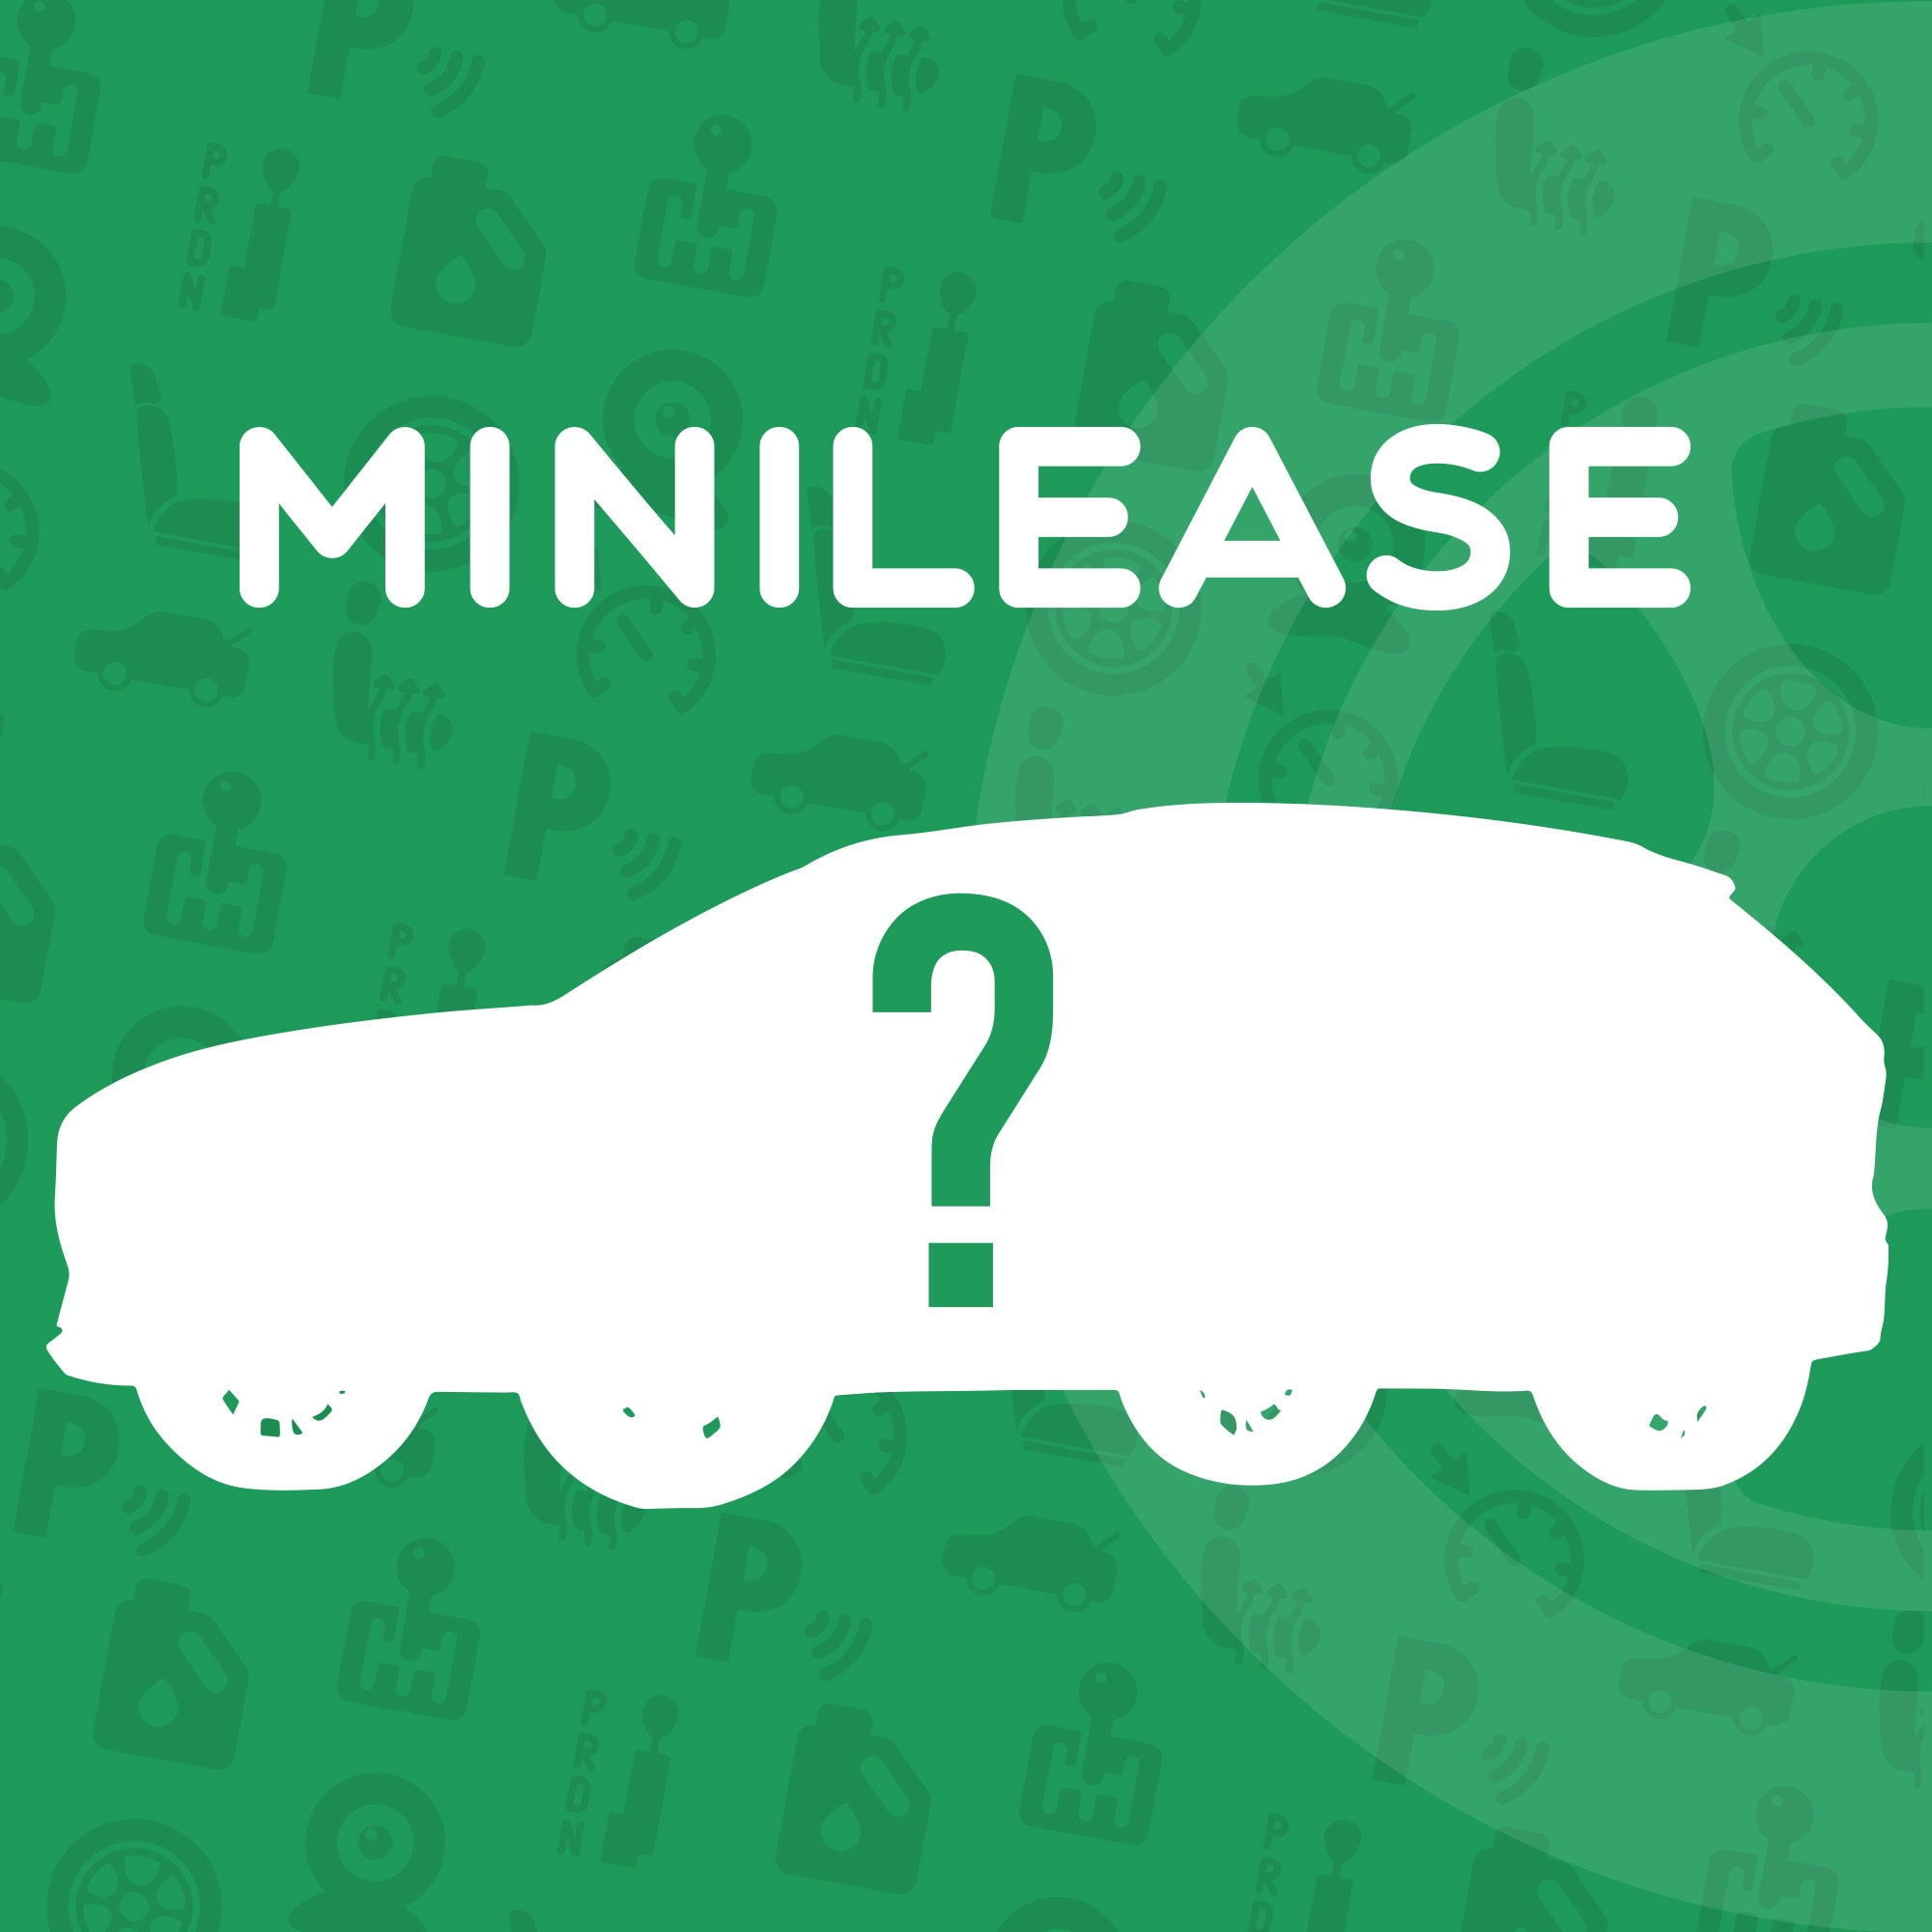 Enterprise Minilease